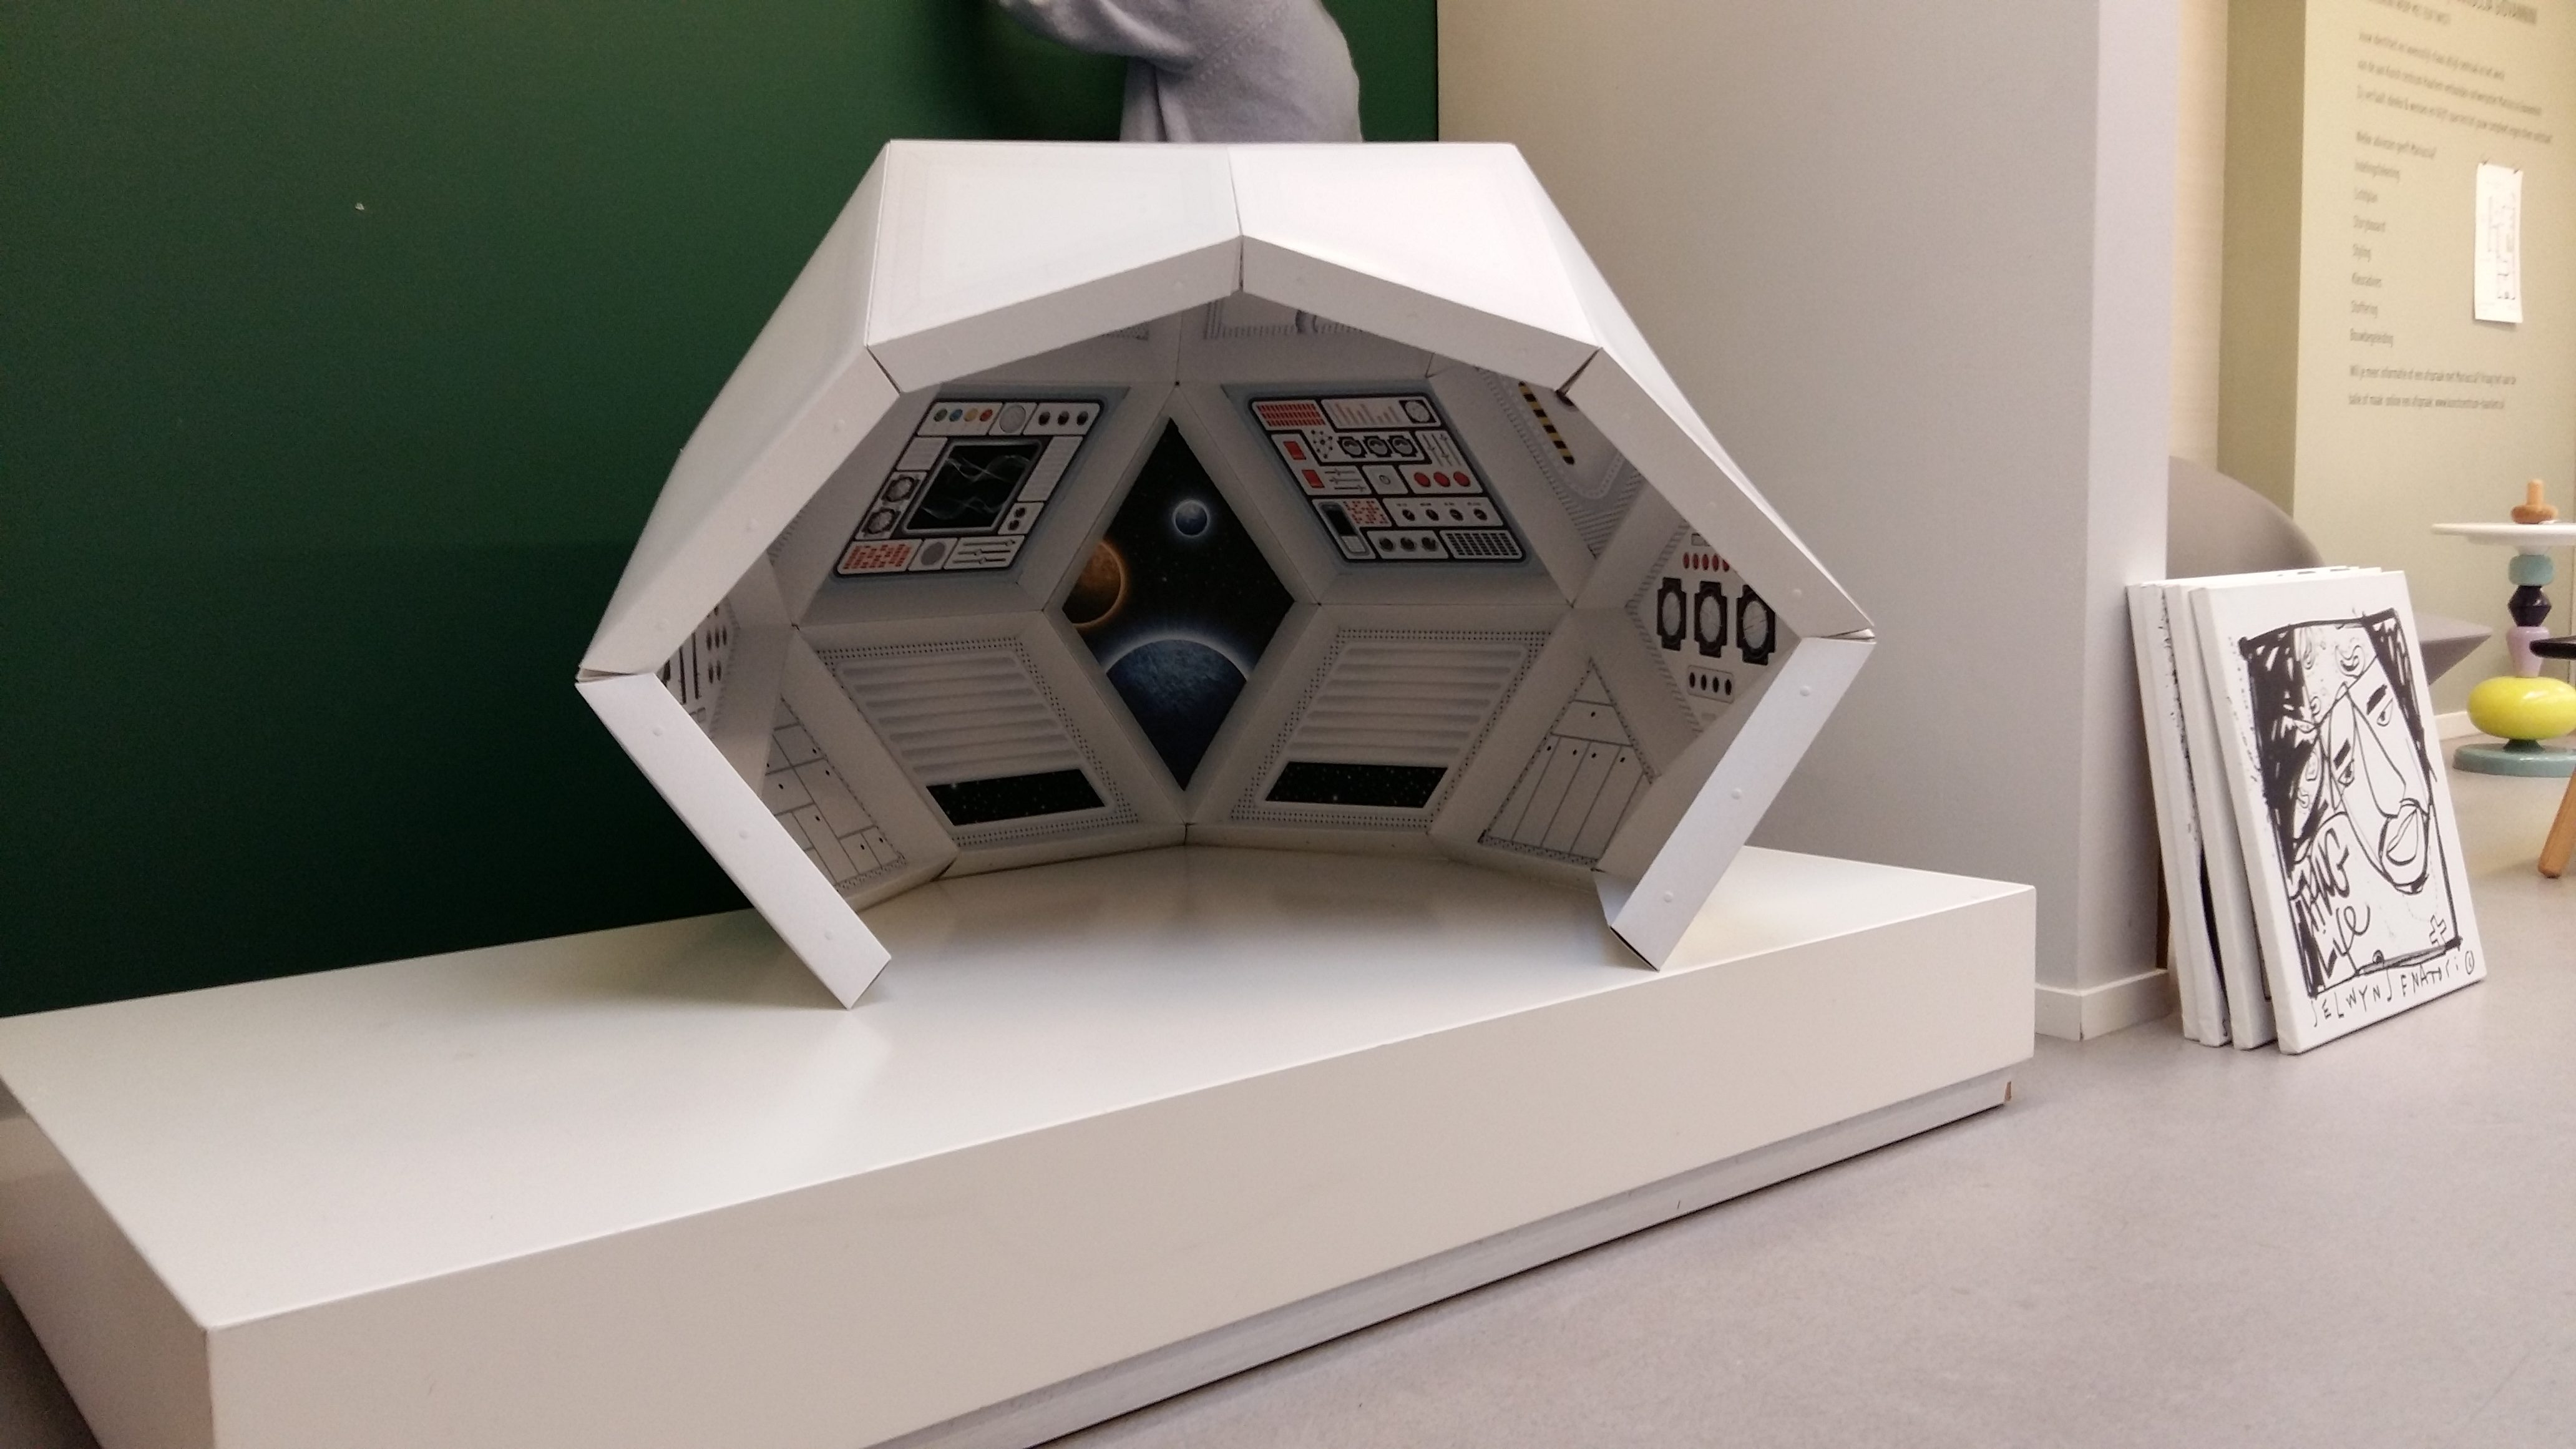 cardboard playhouse exhibited